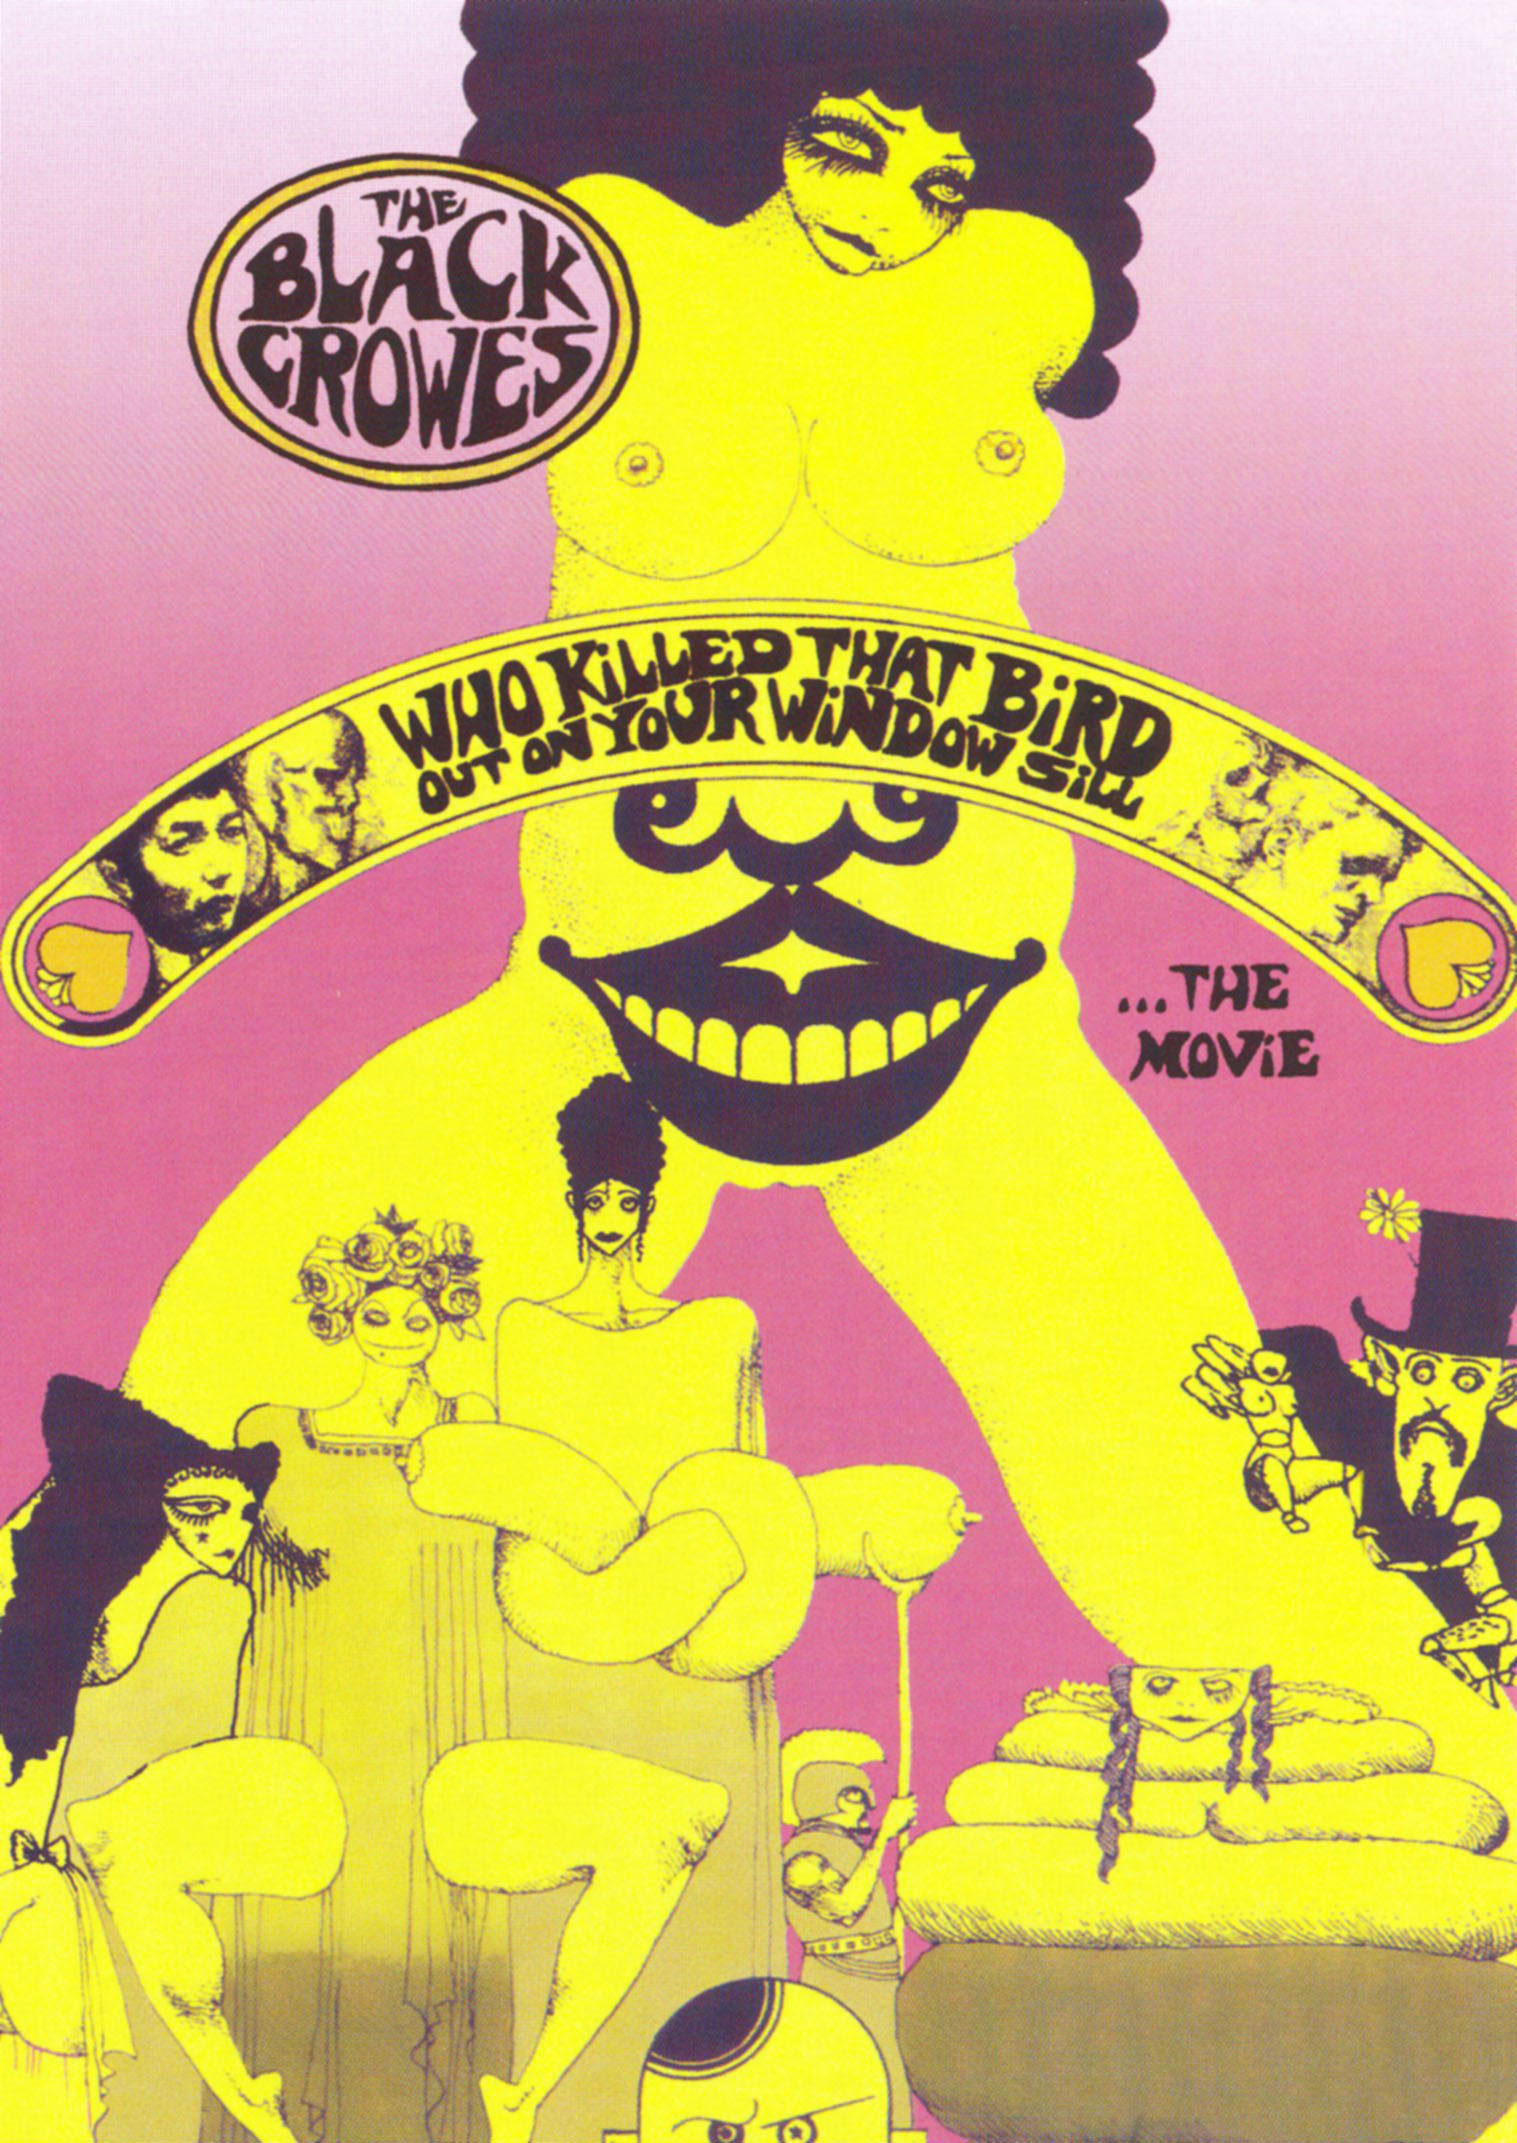 The Black Crowes: Who Killed That Bird Out on Your Window Sill... the Movie